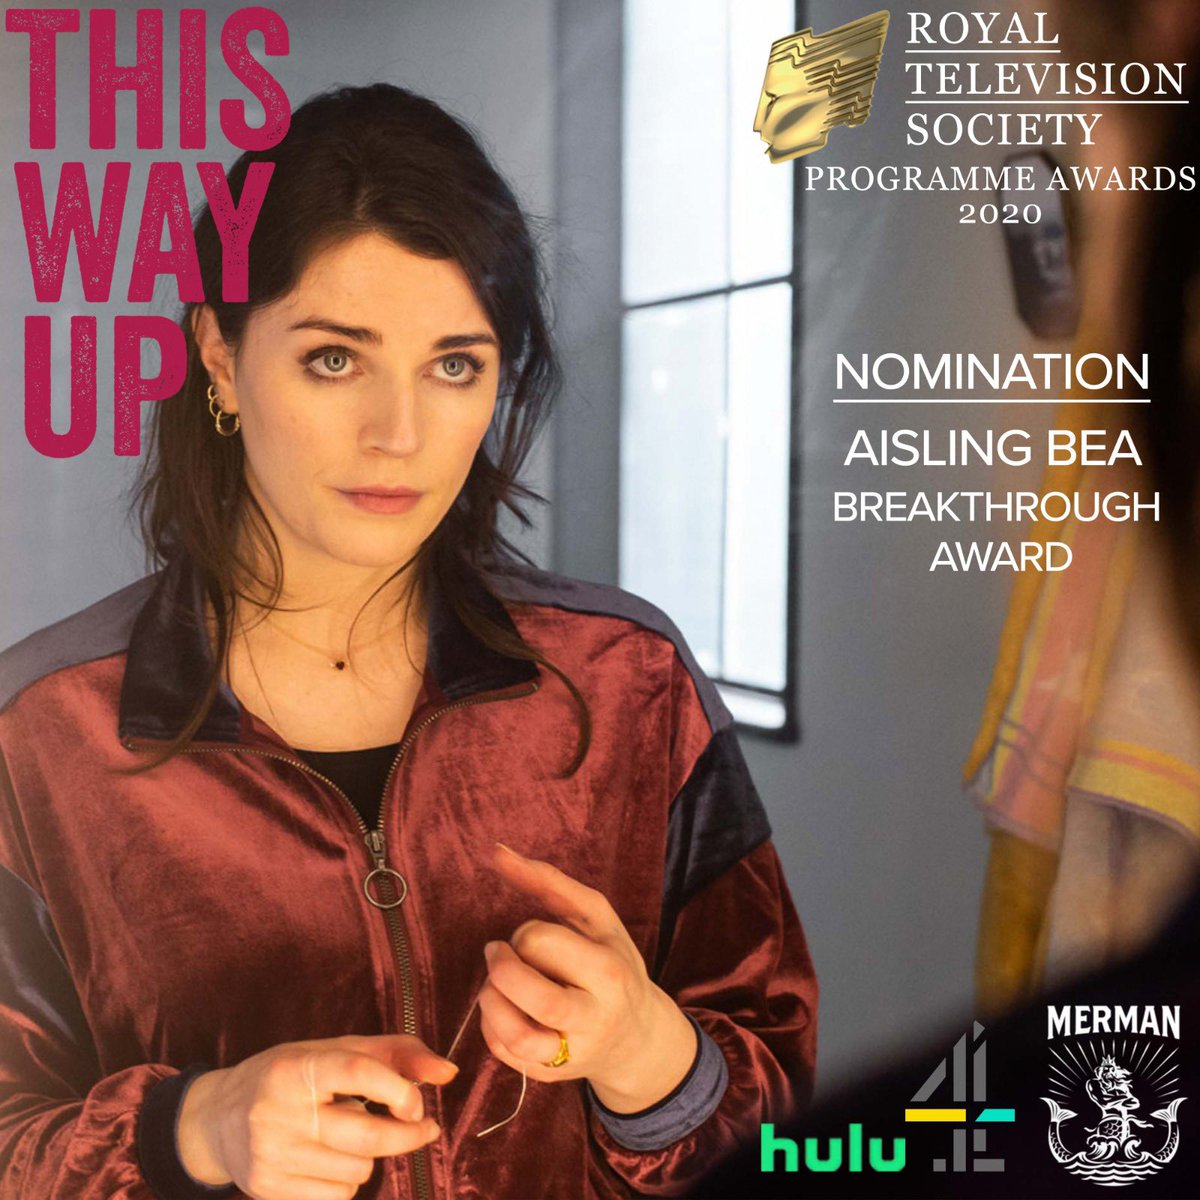 Aisling Bea nominated for Breakthrough Award  - March 3rd, 2020